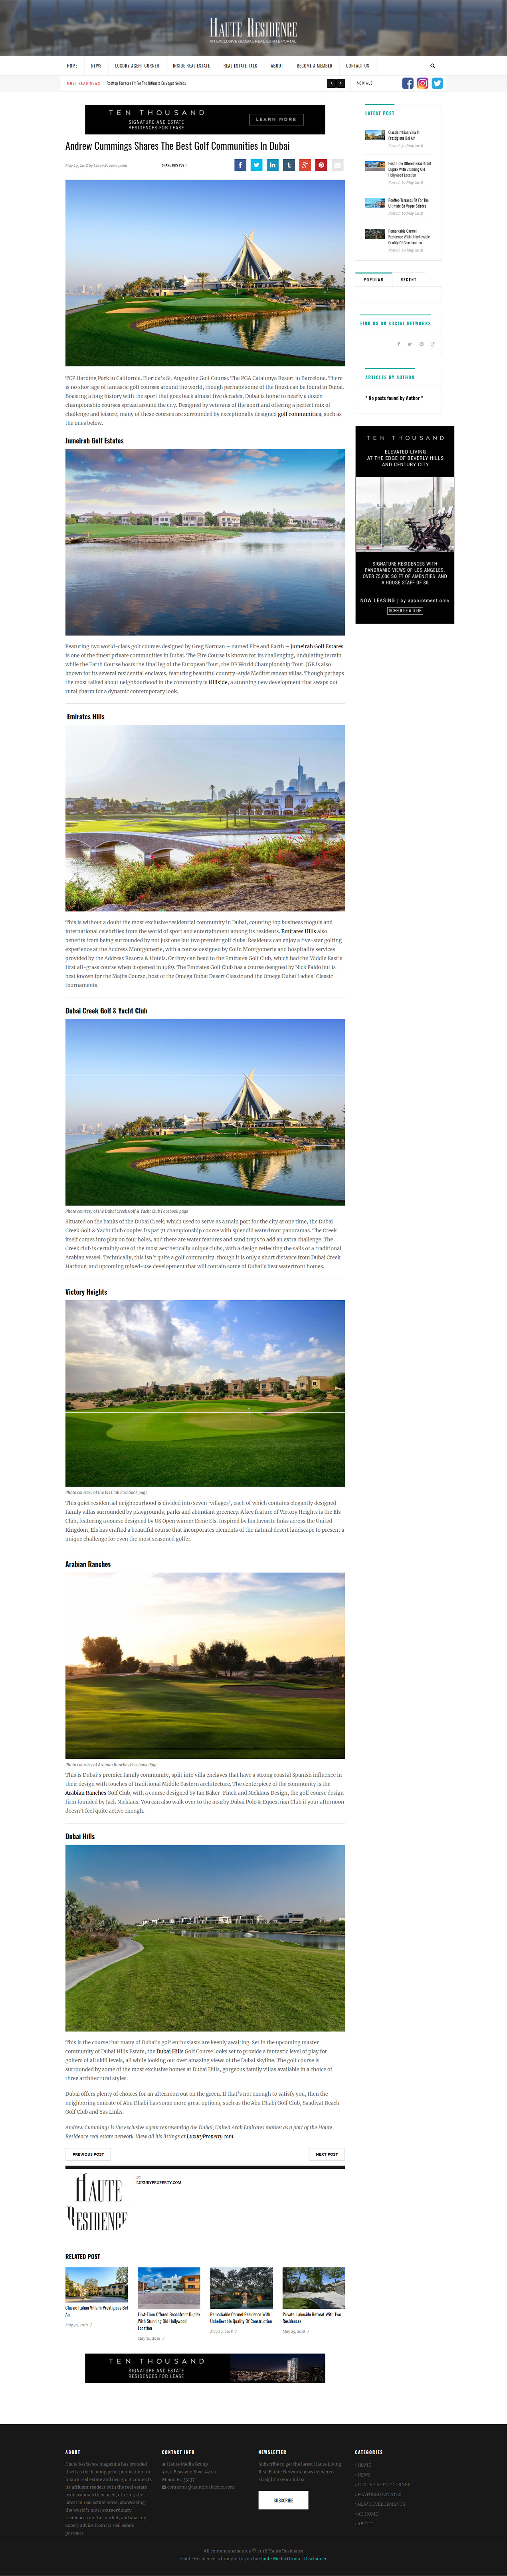 Haute Residence - Andrew Cummings Shares The Best Golf Communities In Dubai